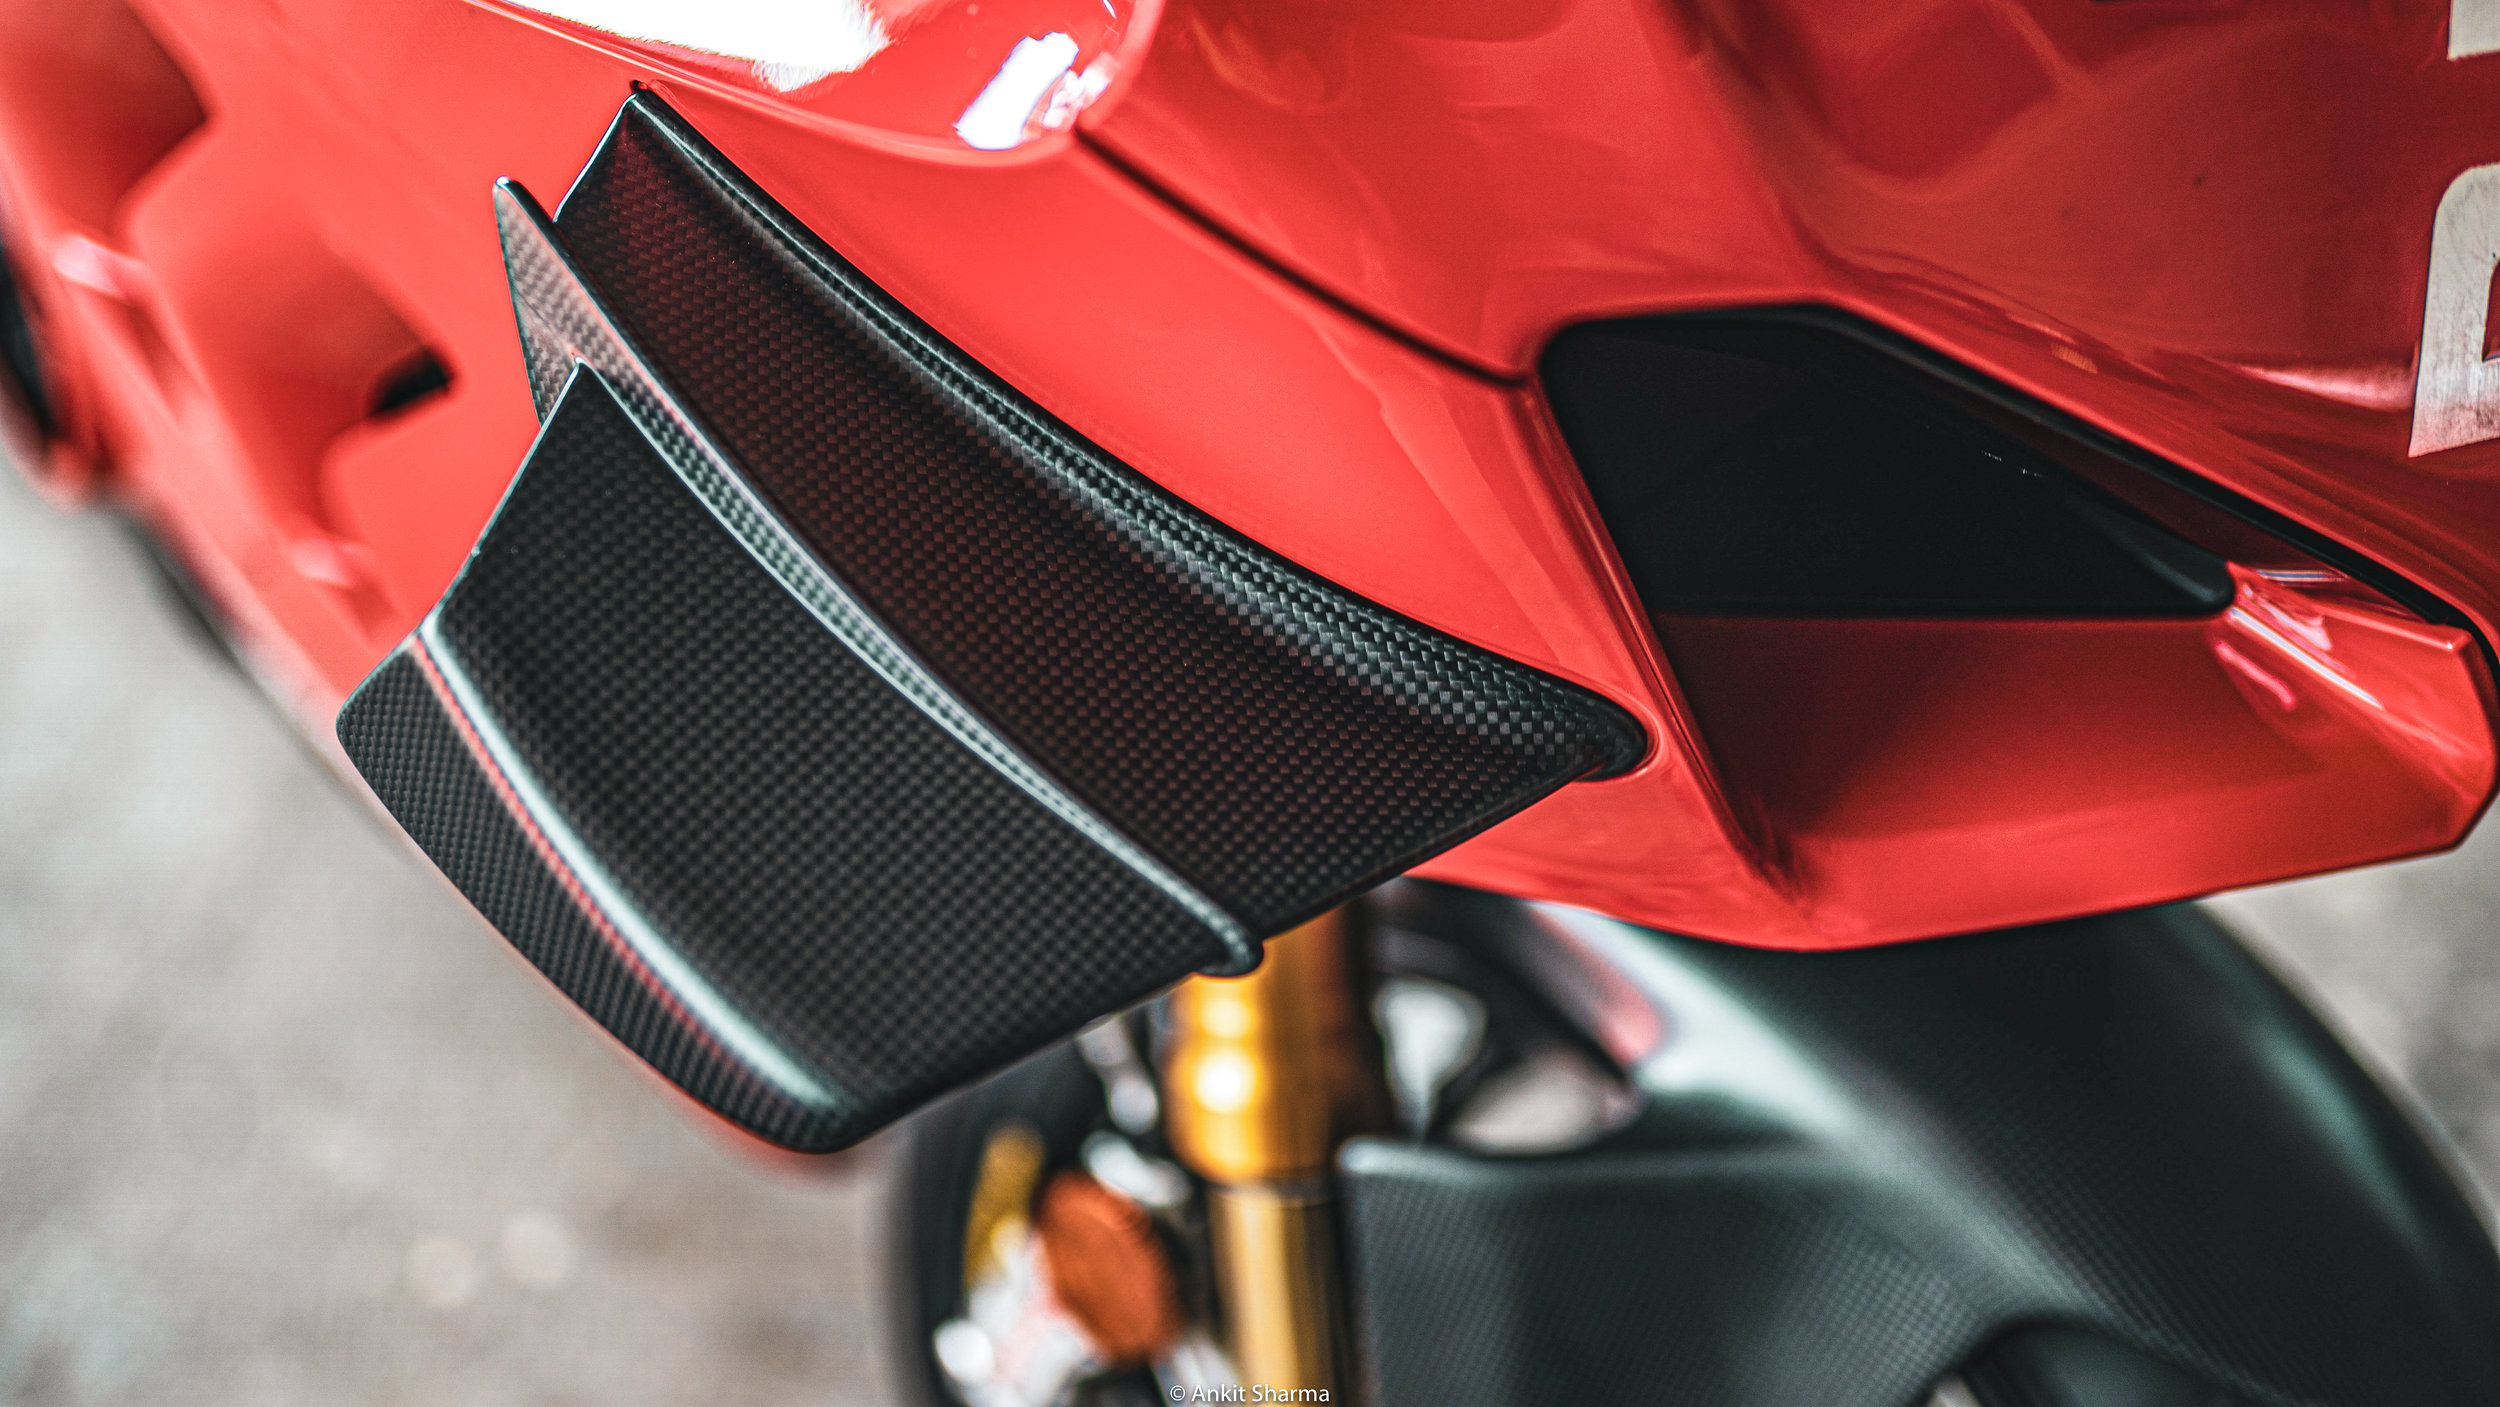 These winglets might help you keep the front wheel down but not your excitement.